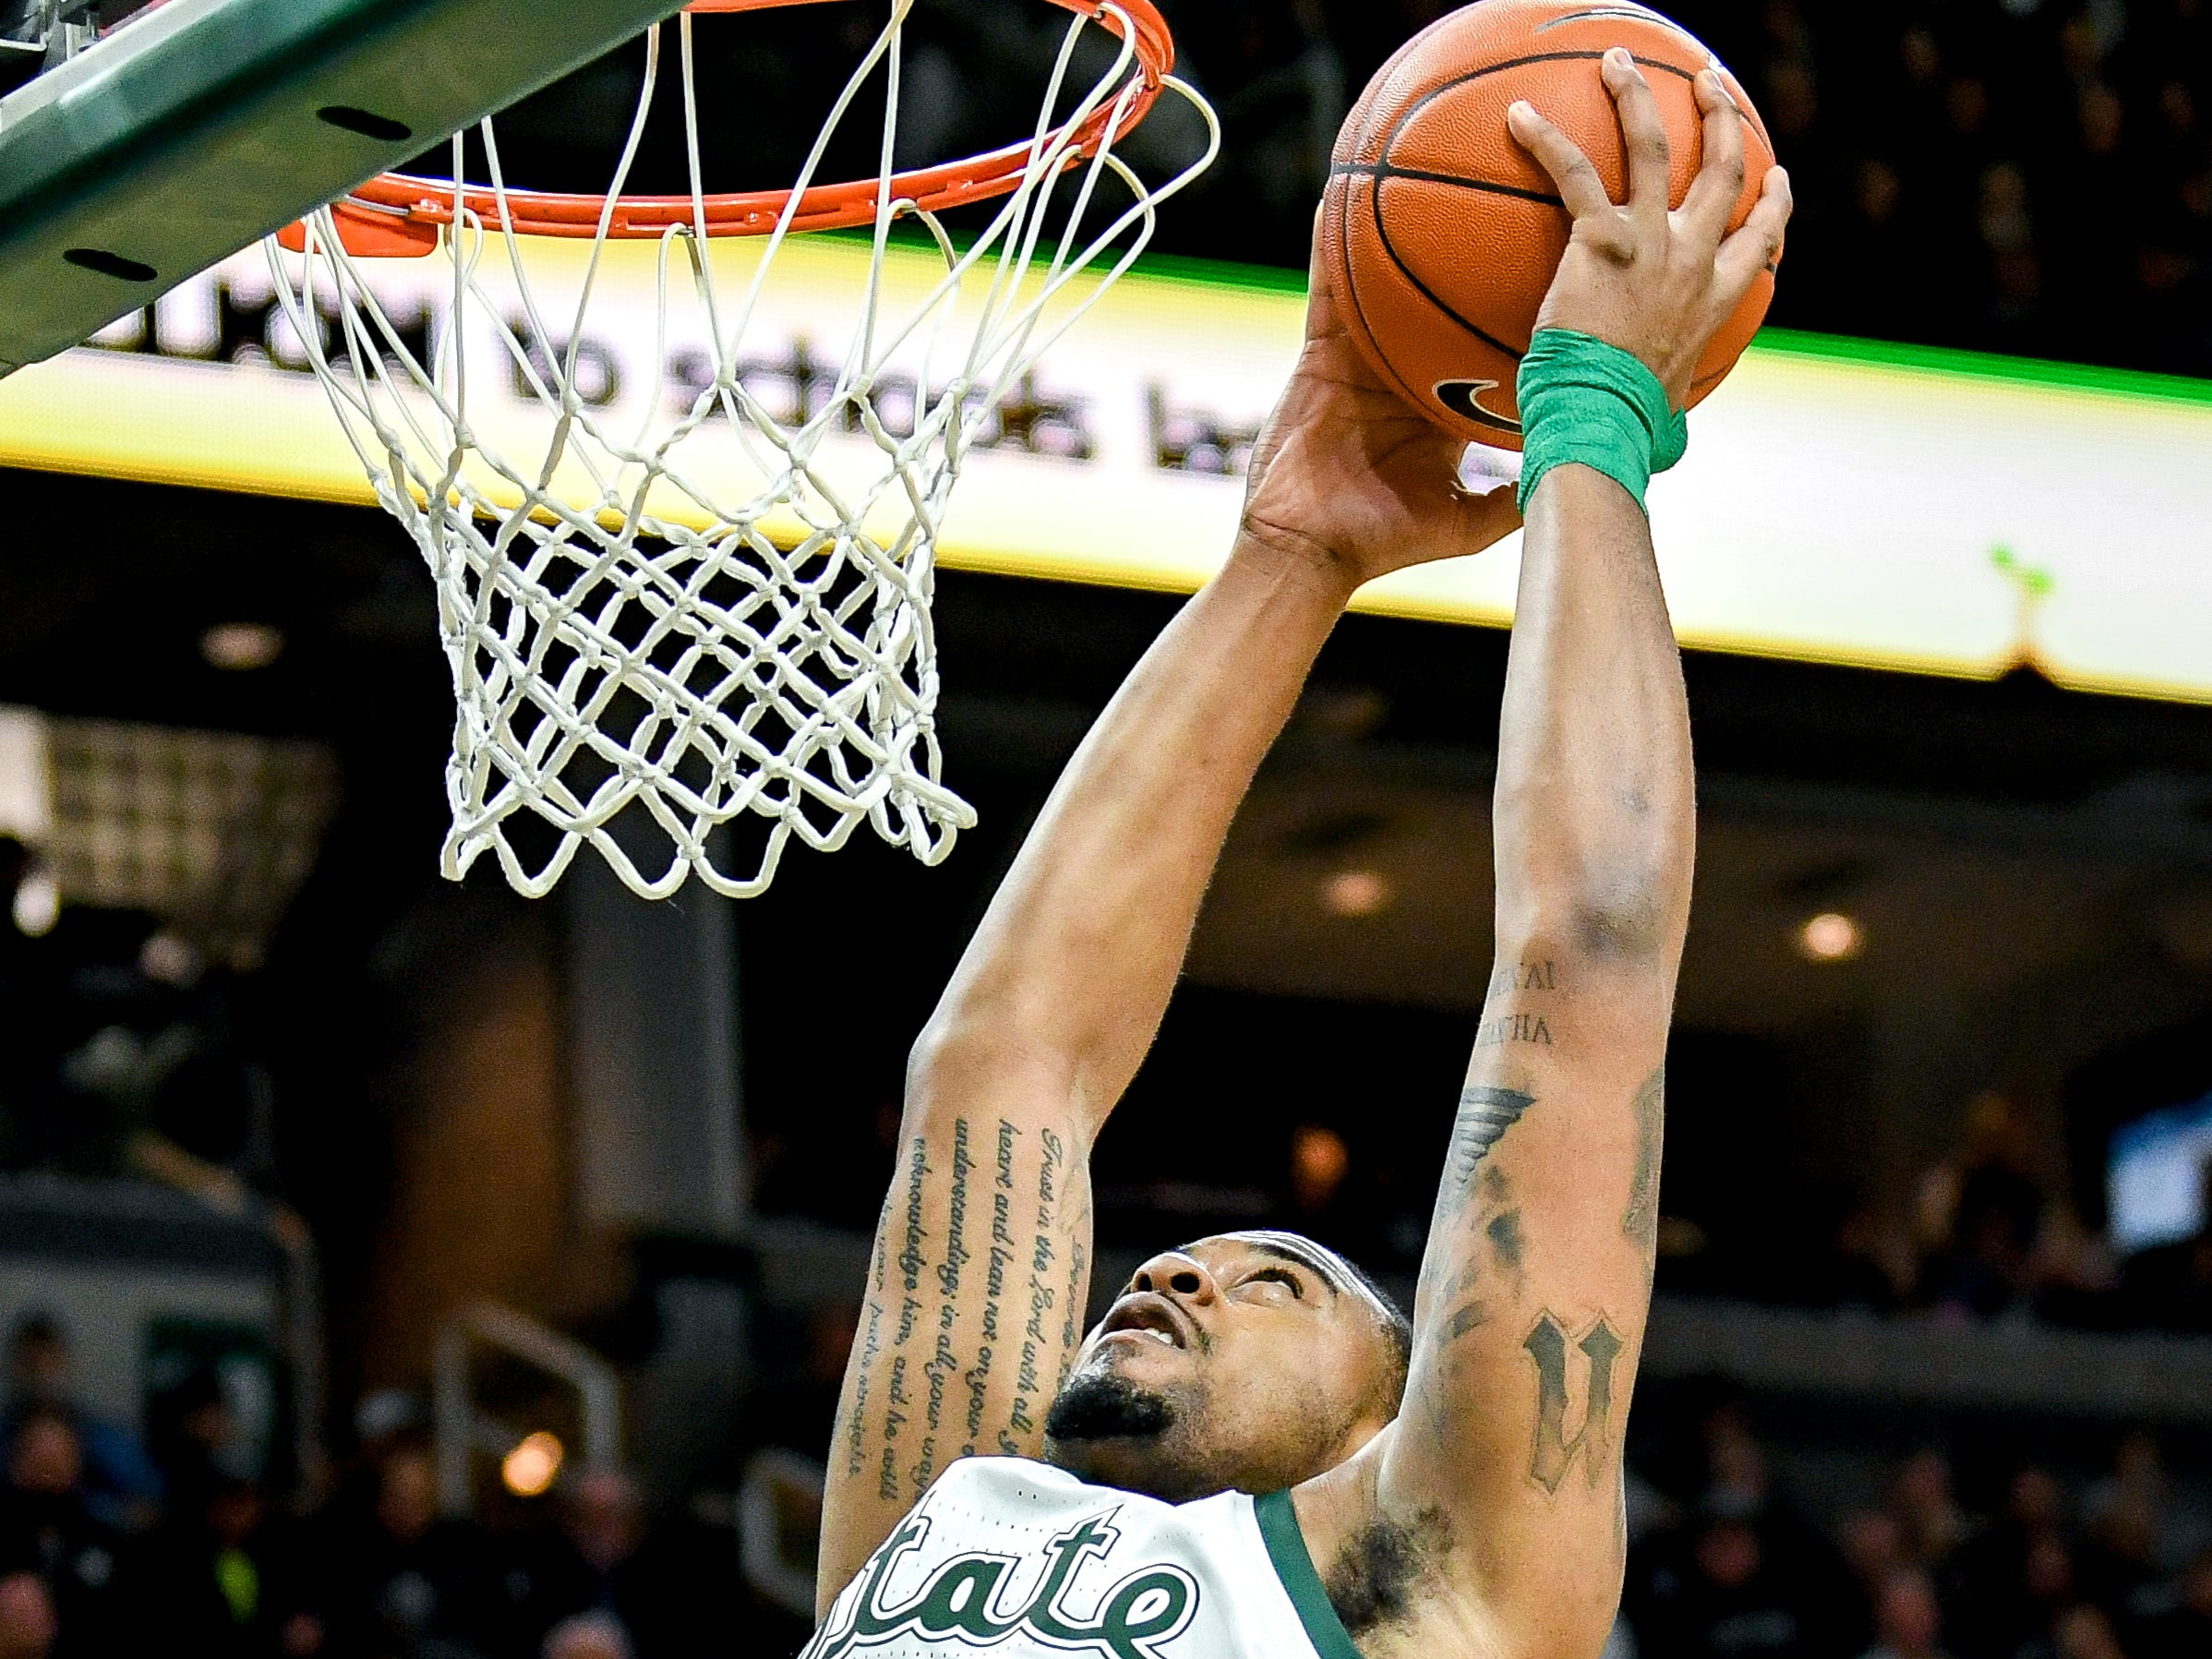 Michigan State's Nick Ward dunks during the first half on Monday, Dec. 3, 2018, at the Breslin Center in East Lansing.